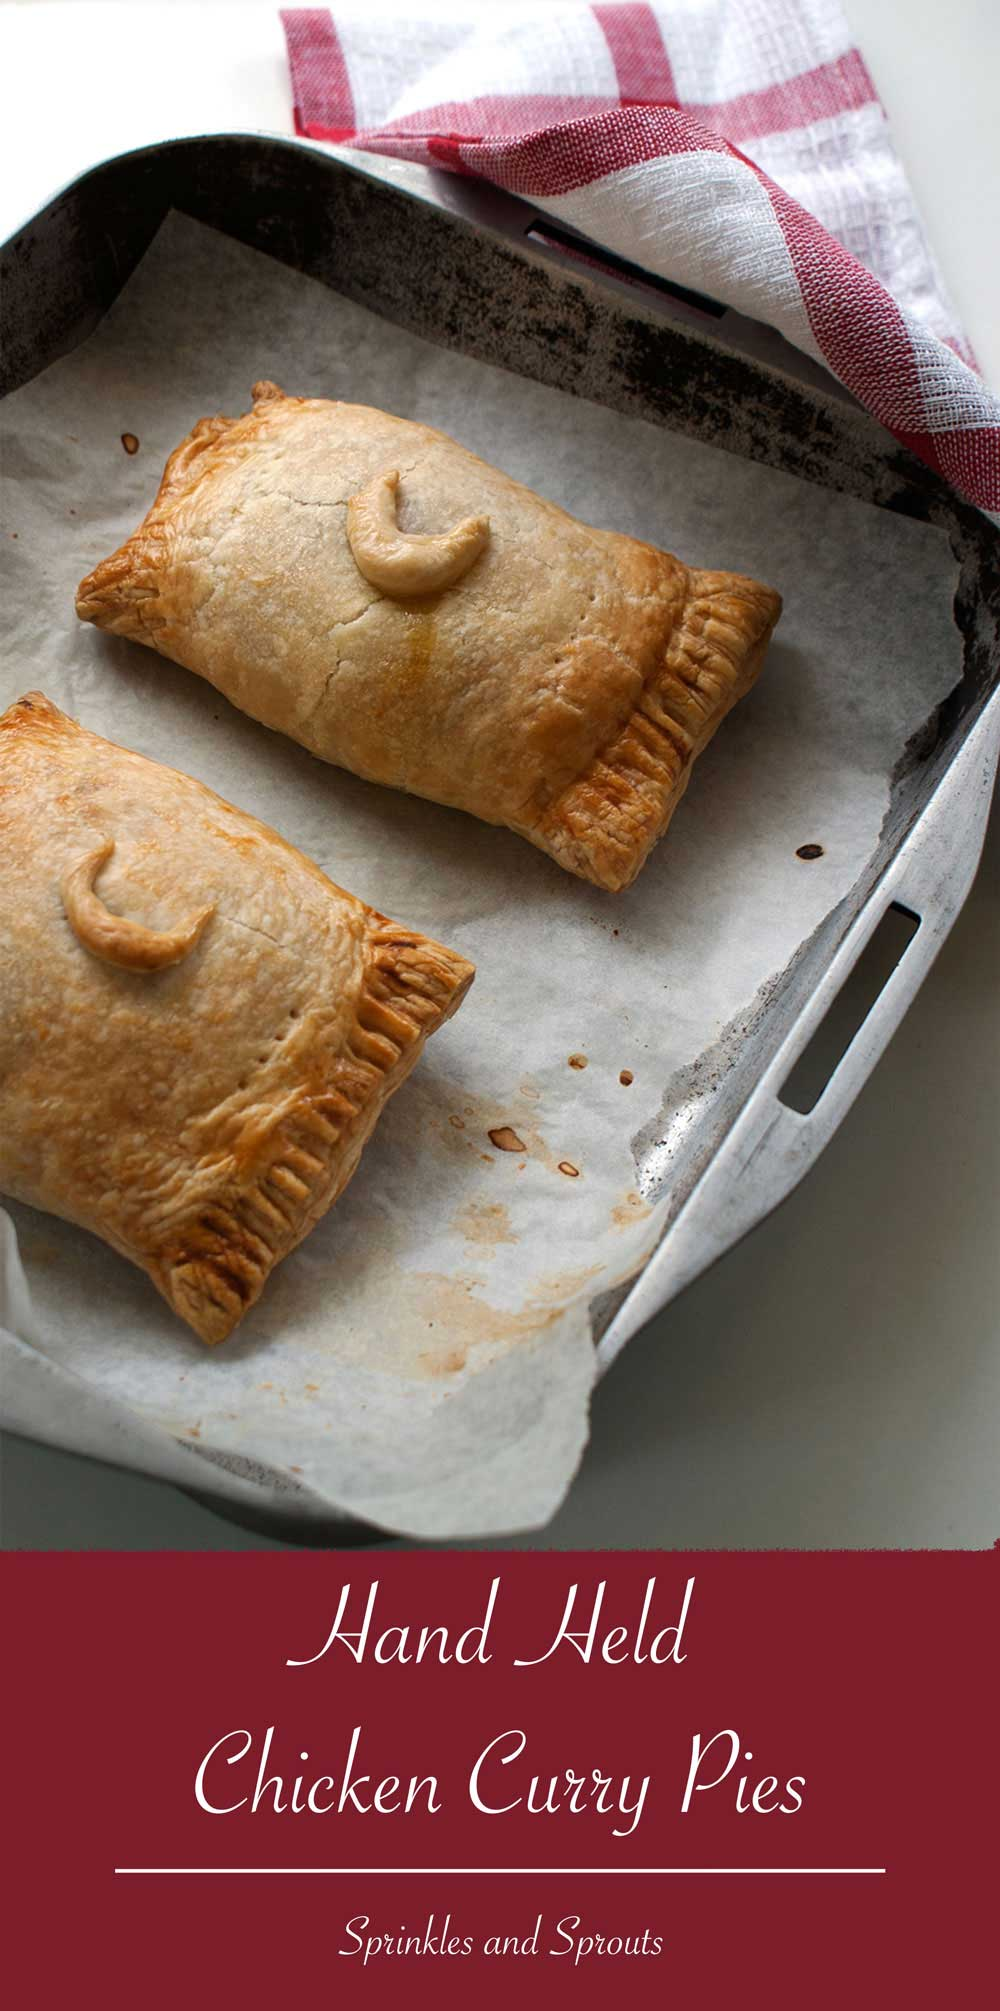 Hand Held Chicken Curry Pies. Puff pastry with a warming lightly spicy filling. Perfect for lunch or a picnic.